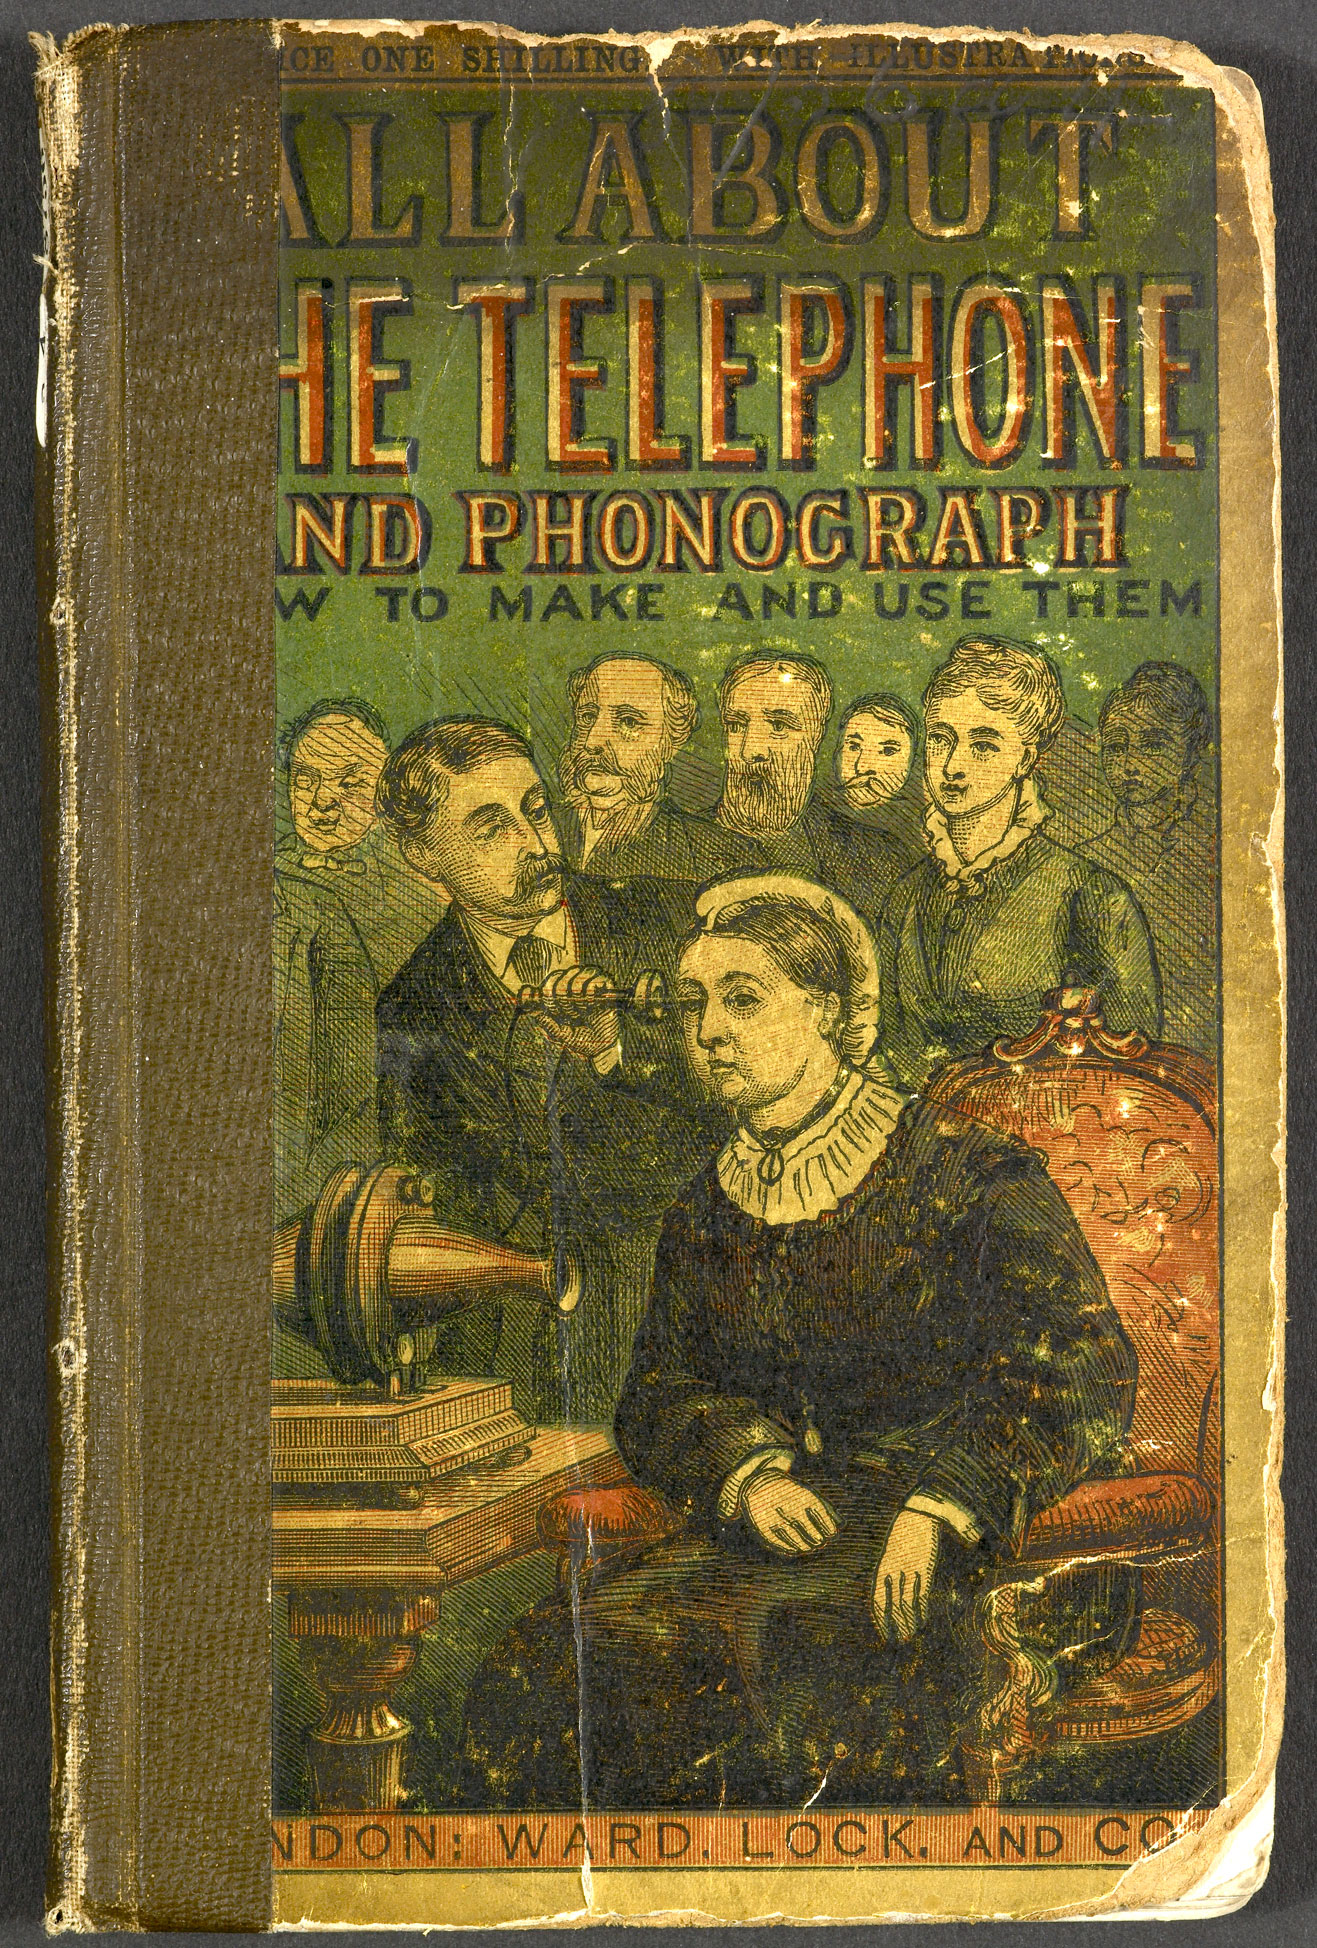 All about the Telephone and Phonograph